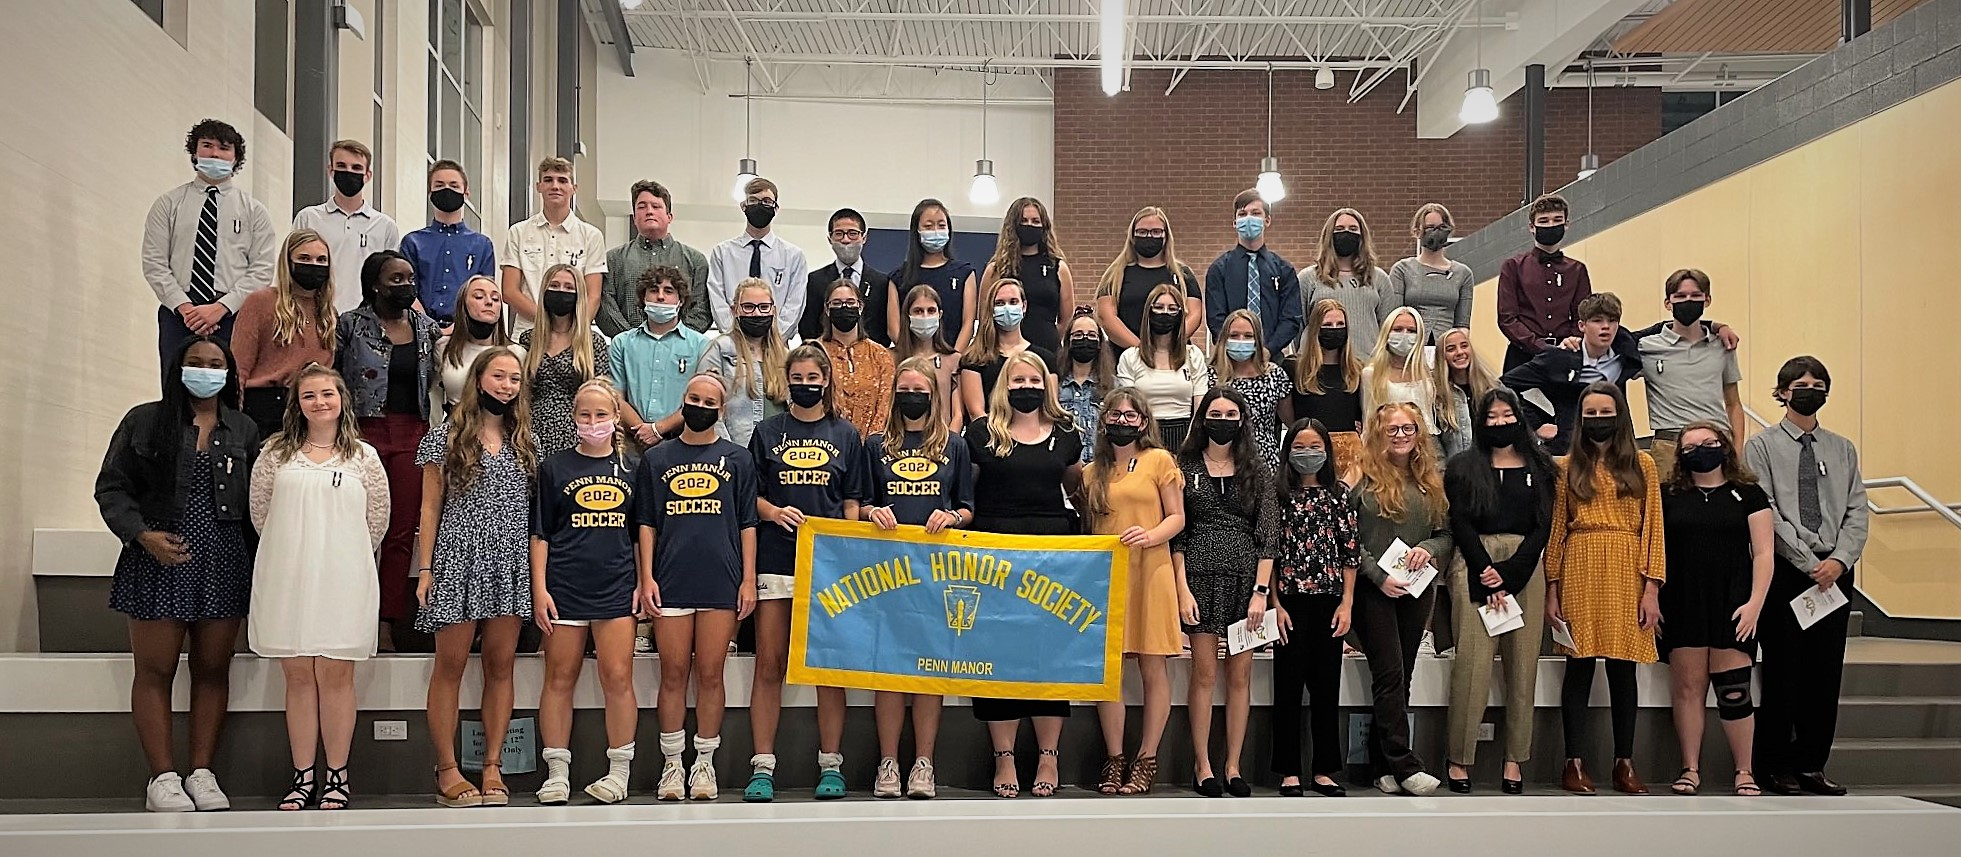 New members of the Penn Manor chapter of the National Honor Society.